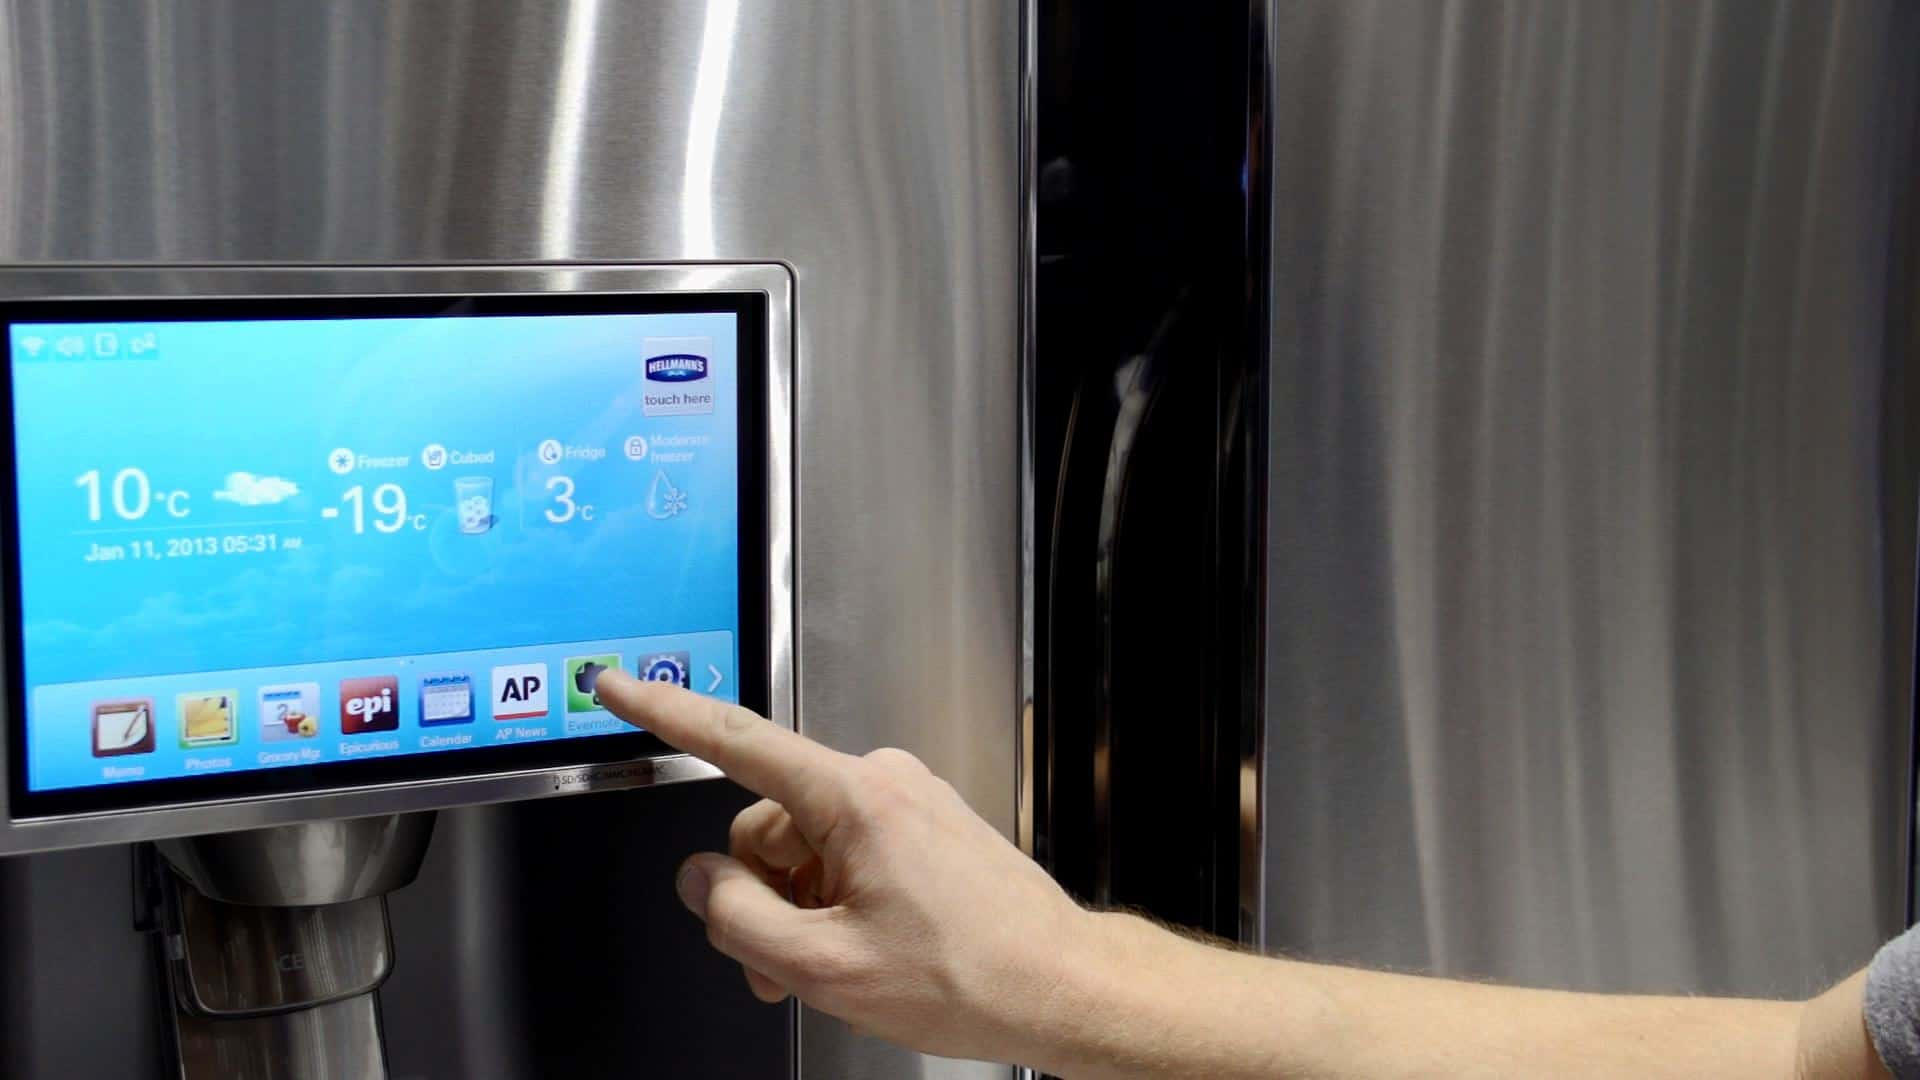 Your Samsung Smart Fridge Could Be Targeted By Hackers